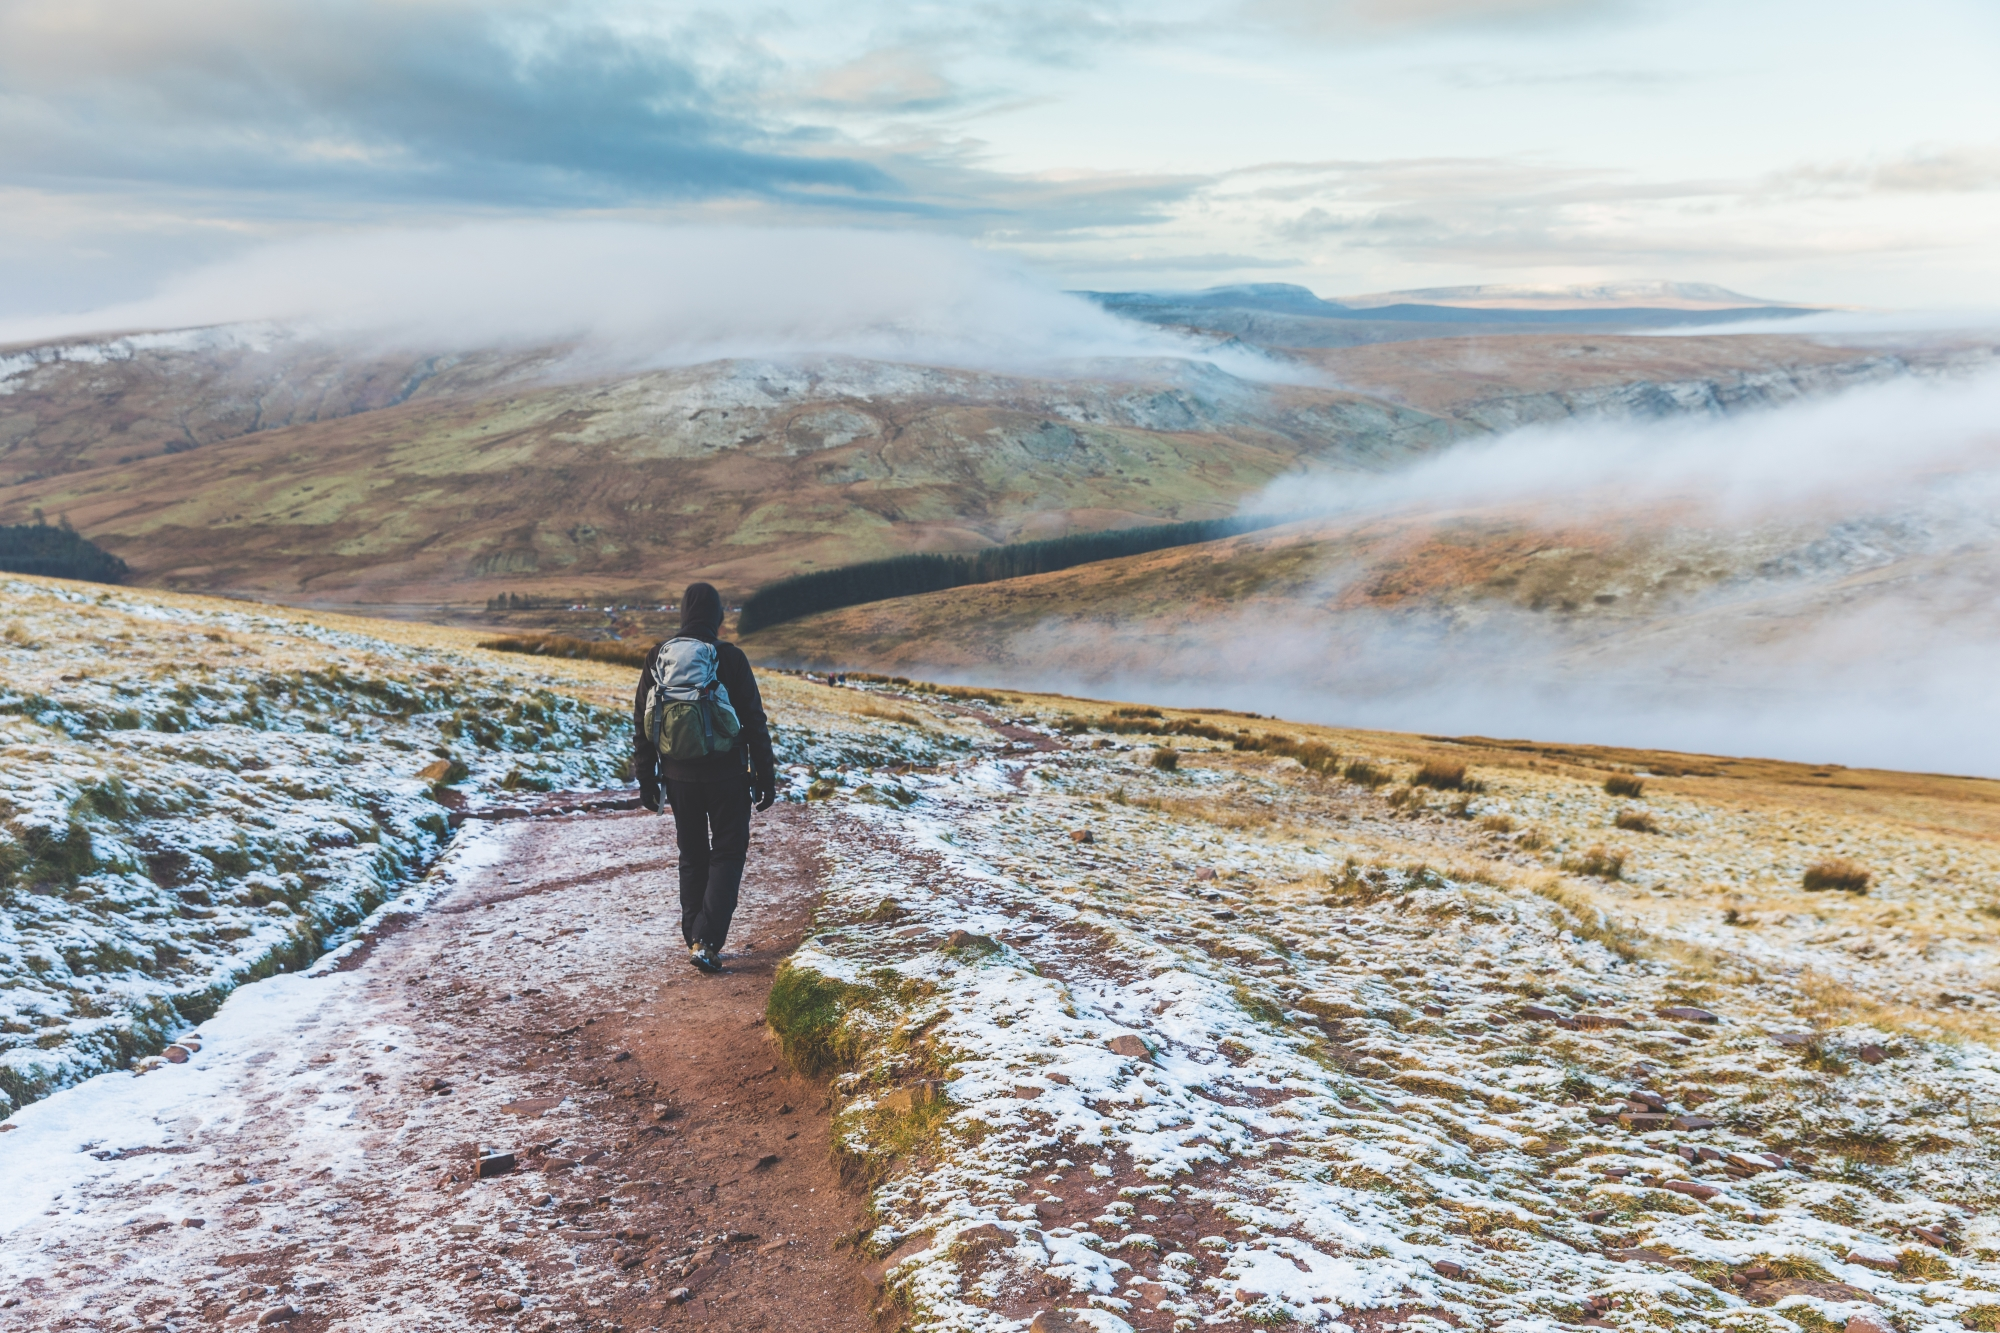 Man walking on snowy hills in Wales